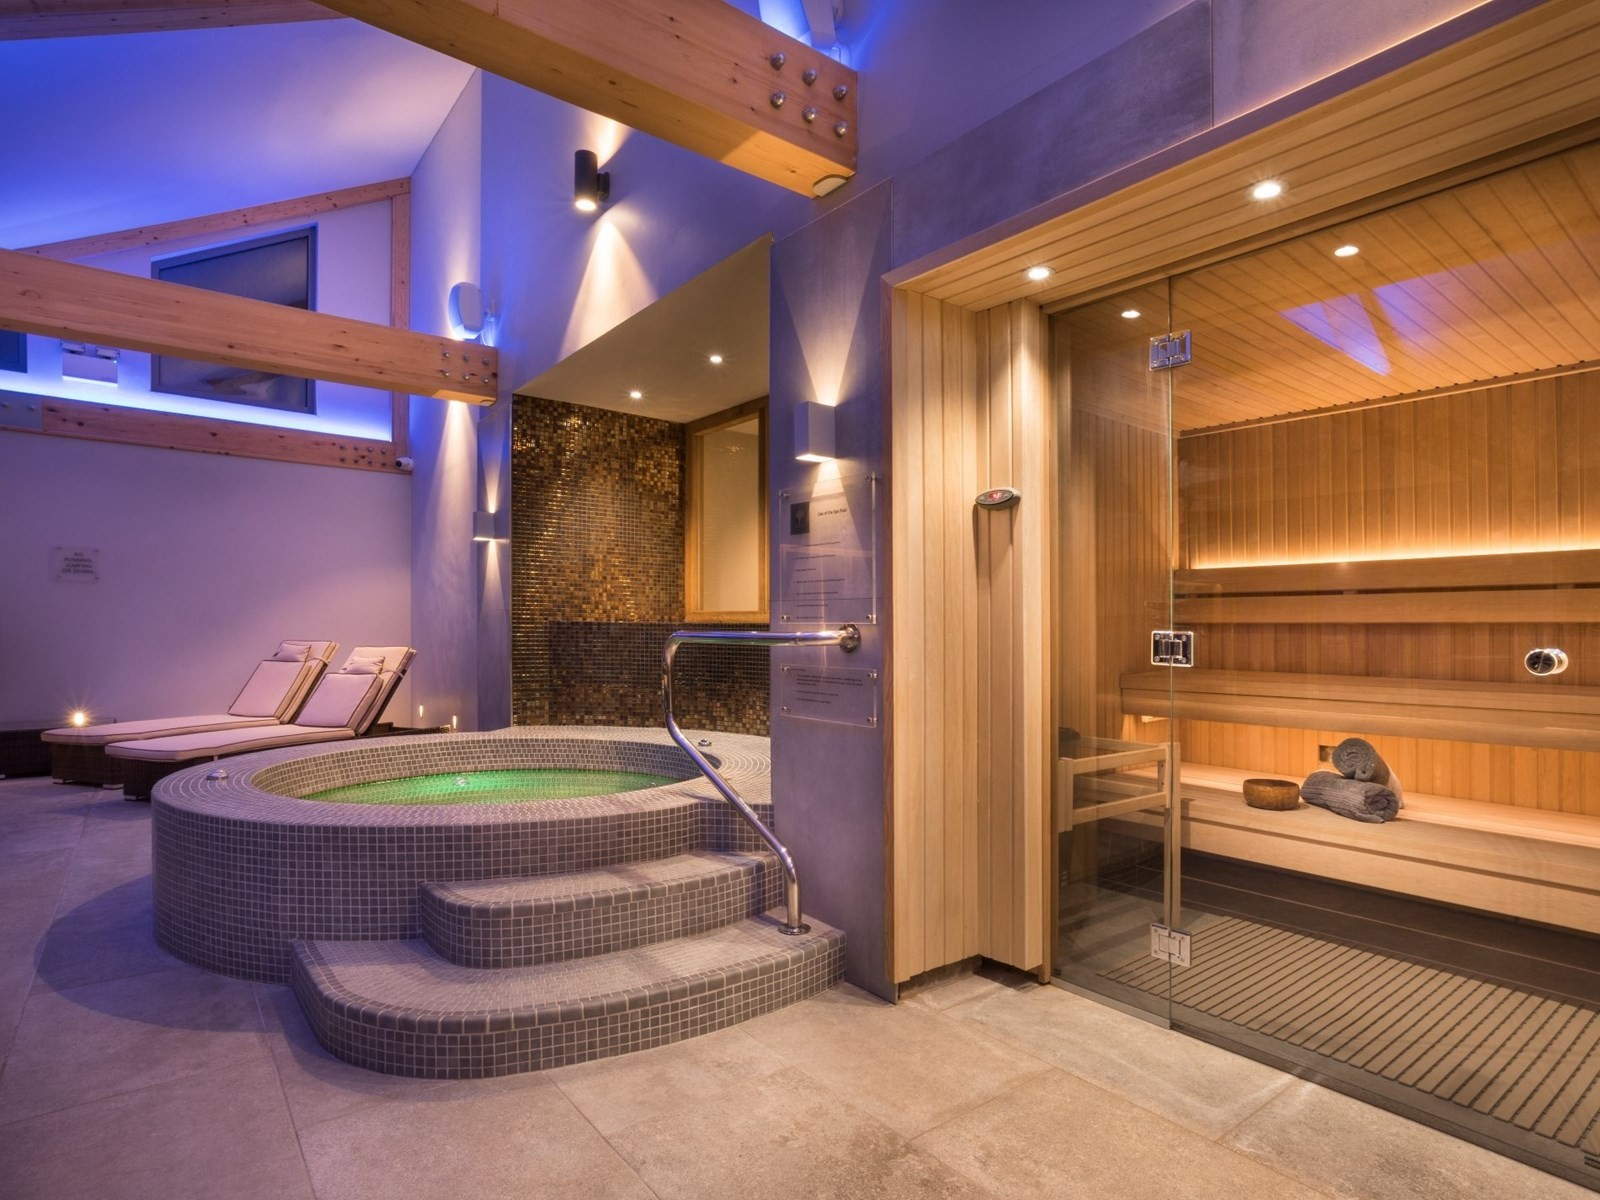 Spa pool and sauna